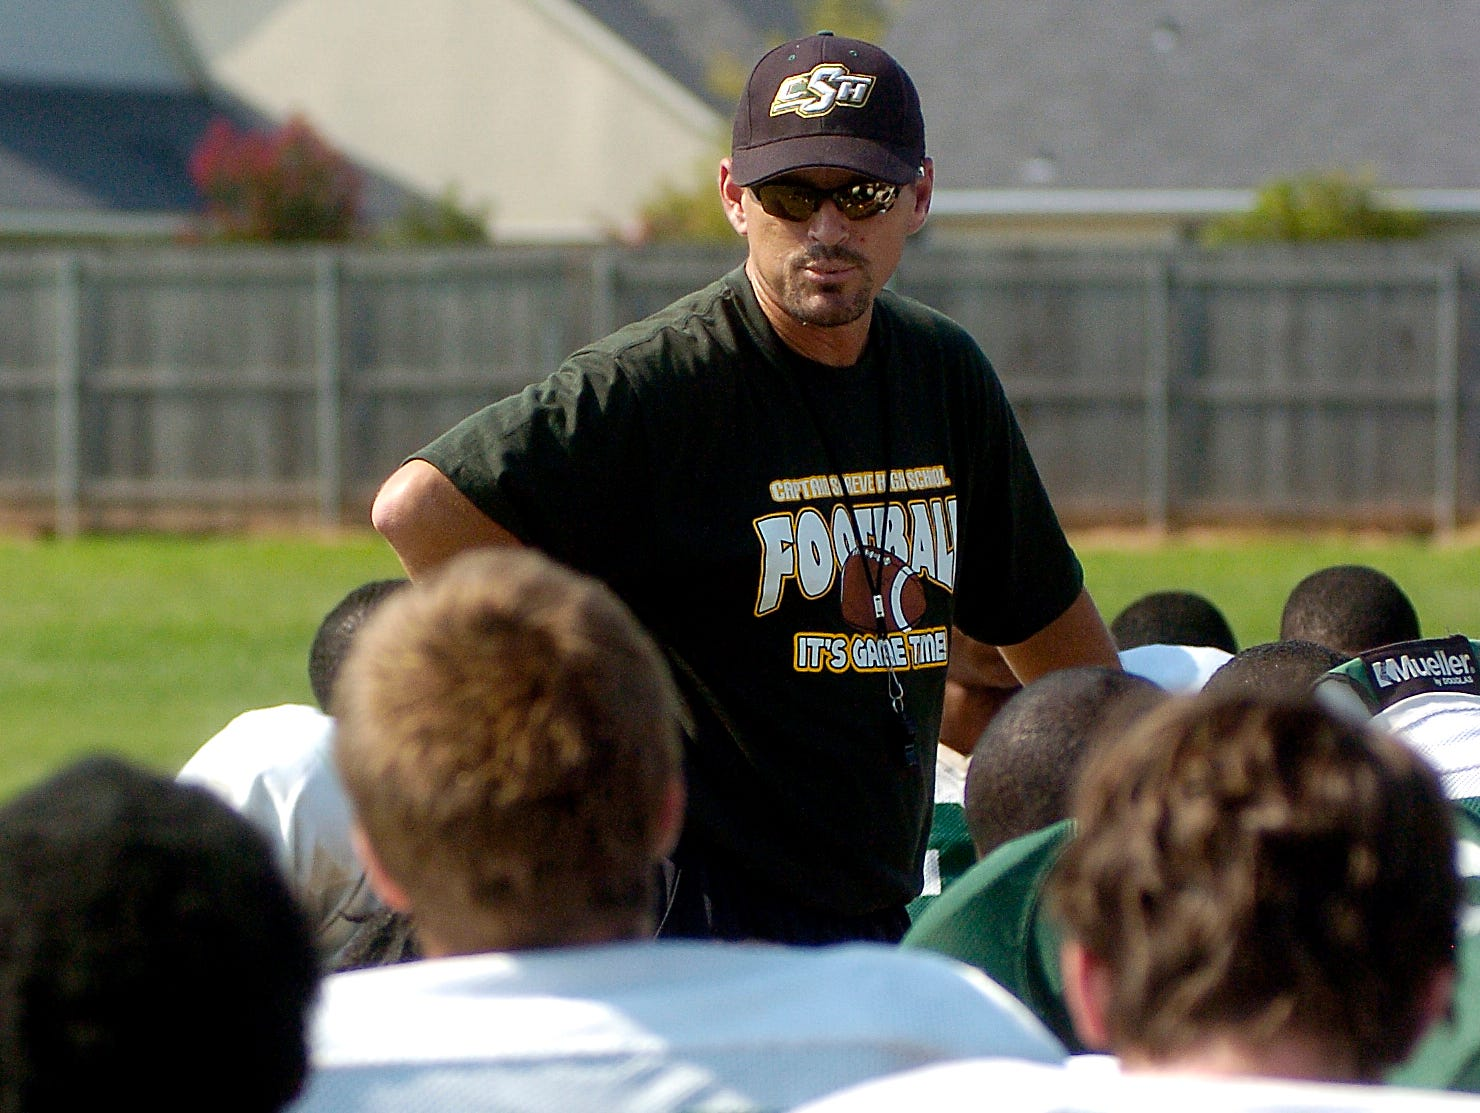 Captain Shreve coach Richard Lary talks to his players during practice at the school.